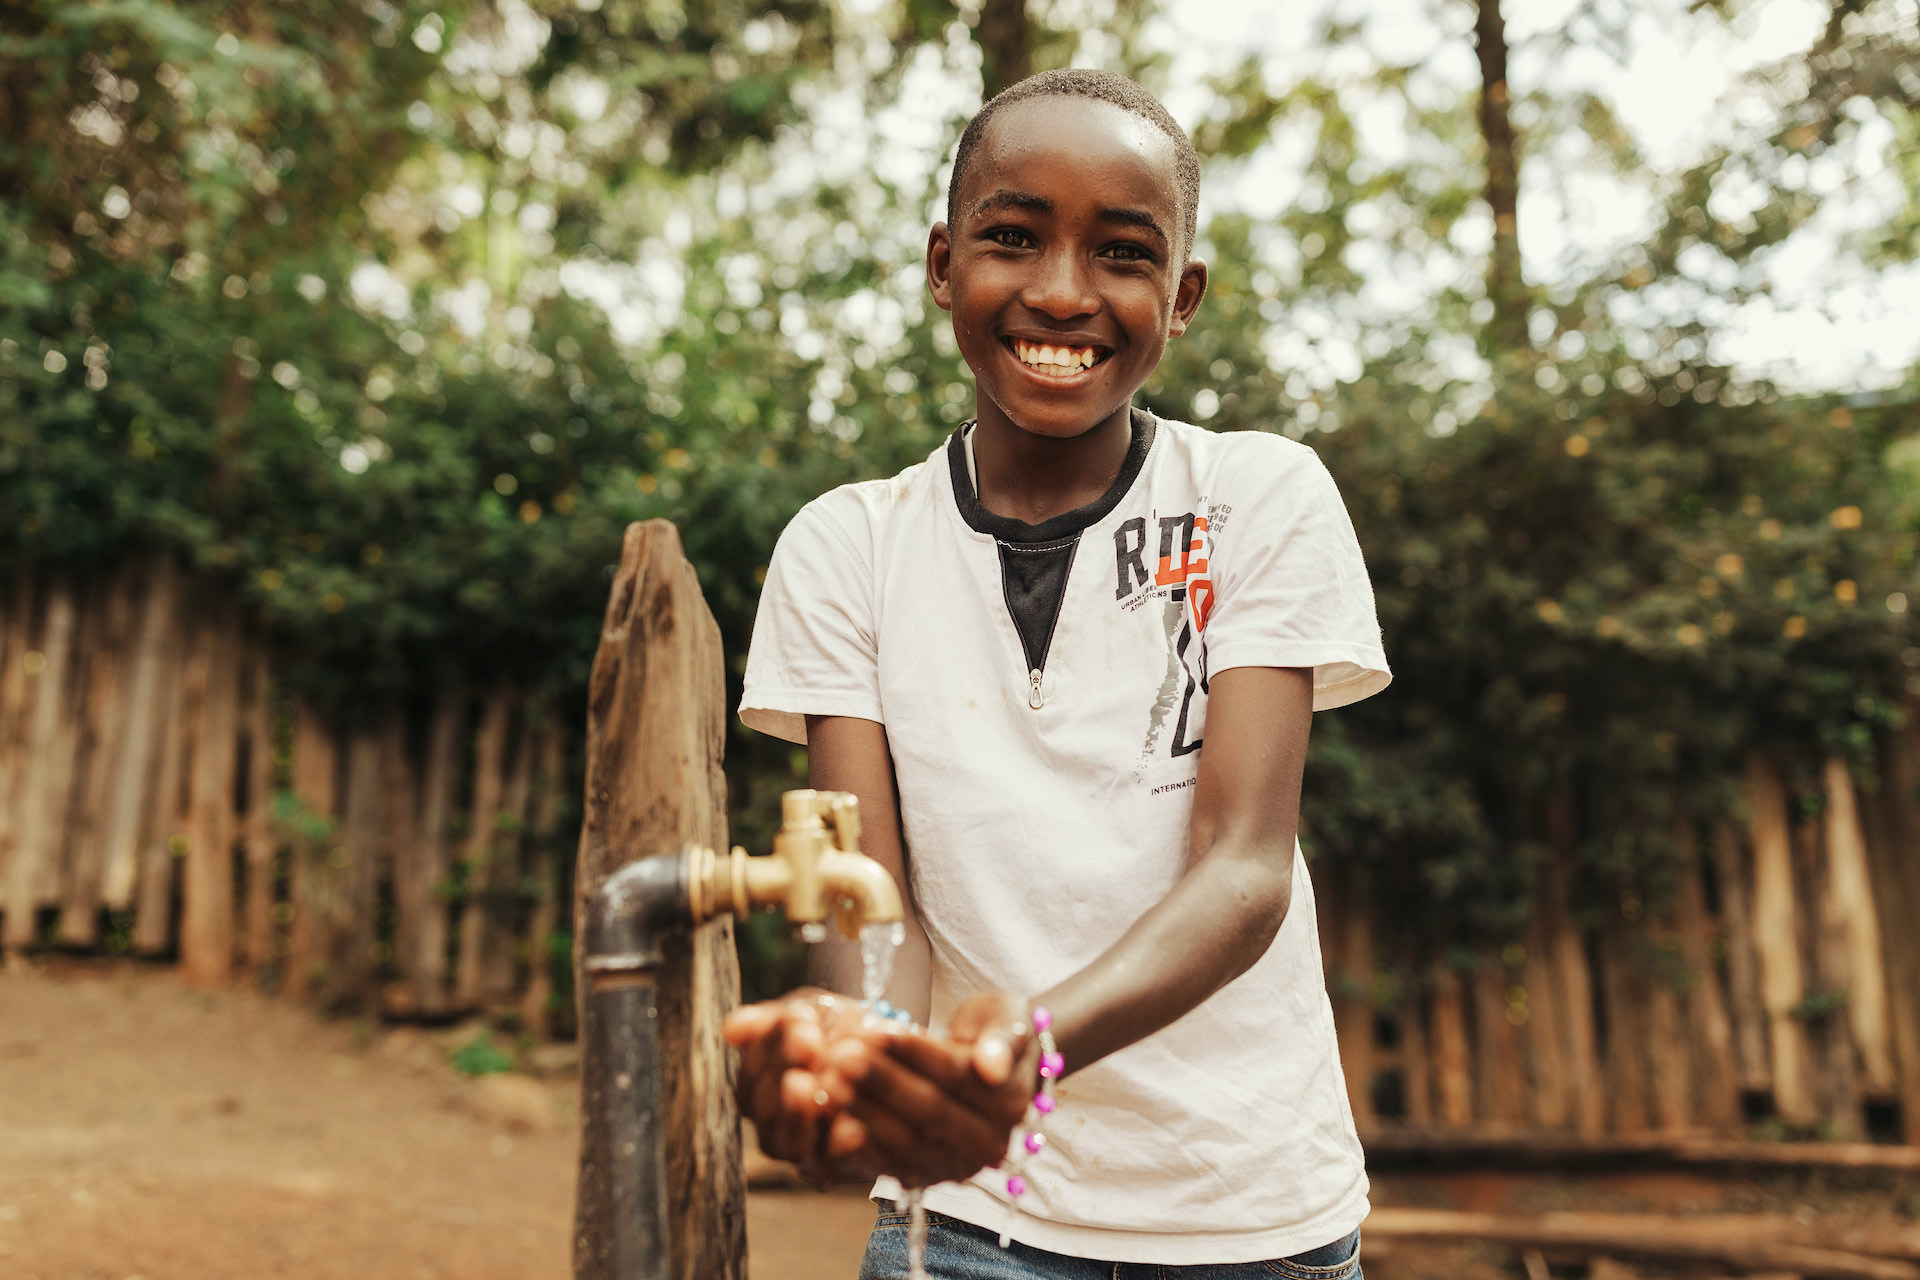 A boy getting water from an outdoor tap